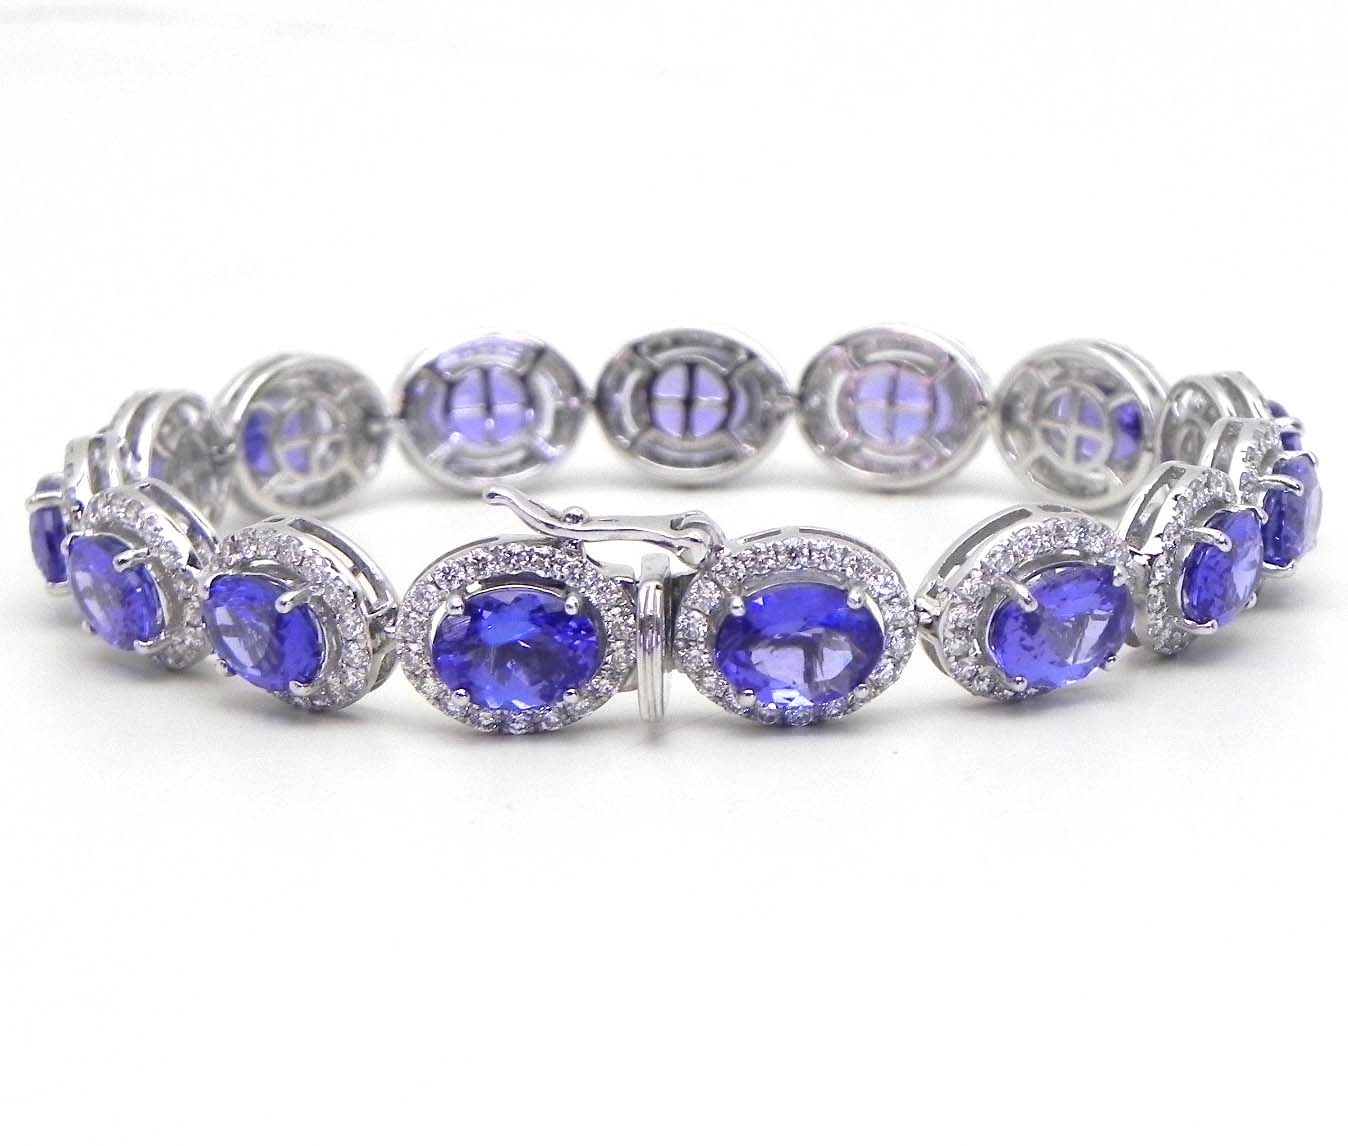 Ladies 14k White Gold 19 90 Tanzanite Amp Diamonds Oval Link